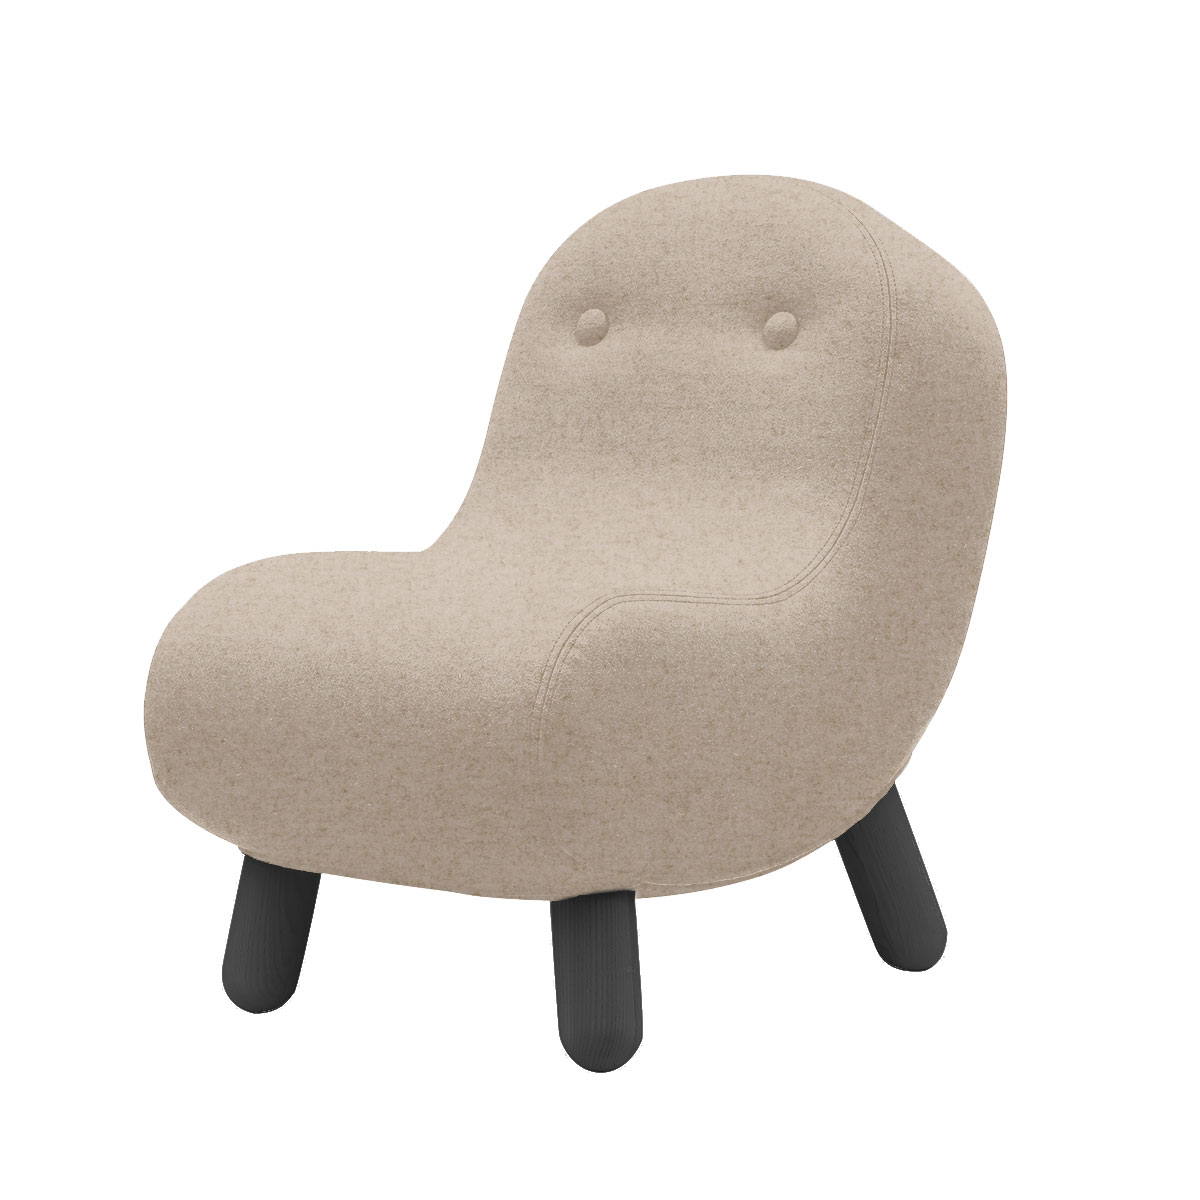 Softline Bob Lounge Chair by Andreas Lund Olson and Baker - Designer & Contemporary Sofas, Furniture - Olson and Baker showcases original designs from authentic, designer brands. Buy contemporary furniture, lighting, storage, sofas & chairs at Olson + Baker.